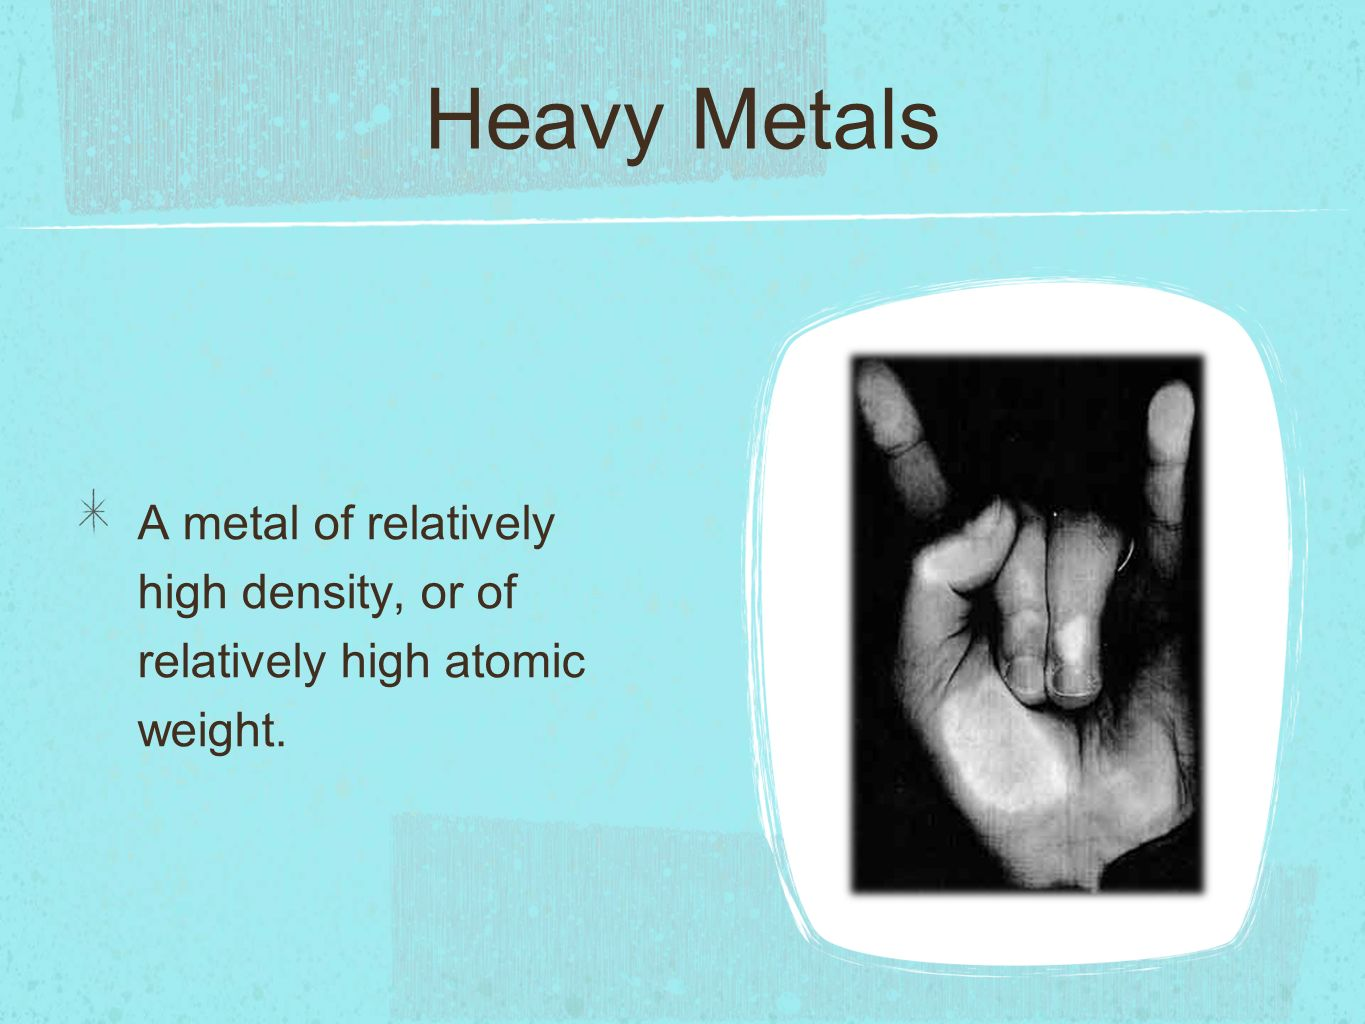 Heavy Metals A metal of relatively high density, or of relatively high atomic weight.